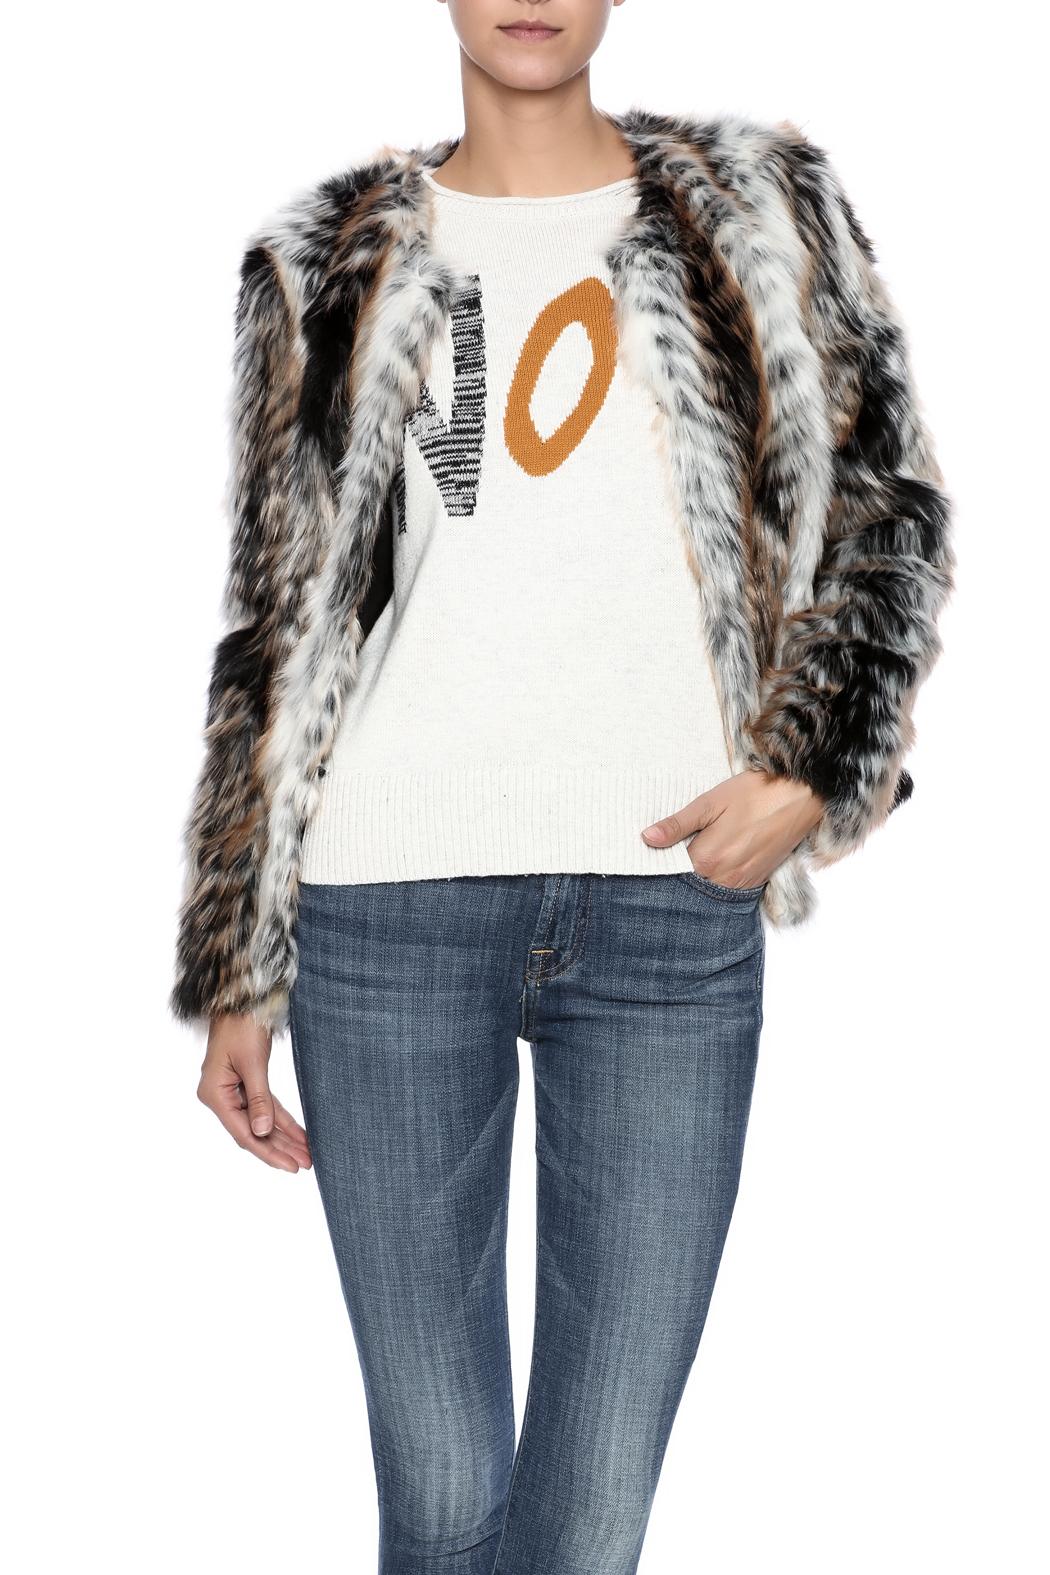 rebecca elliott Tan Faux-Fur Jacket - Main Image